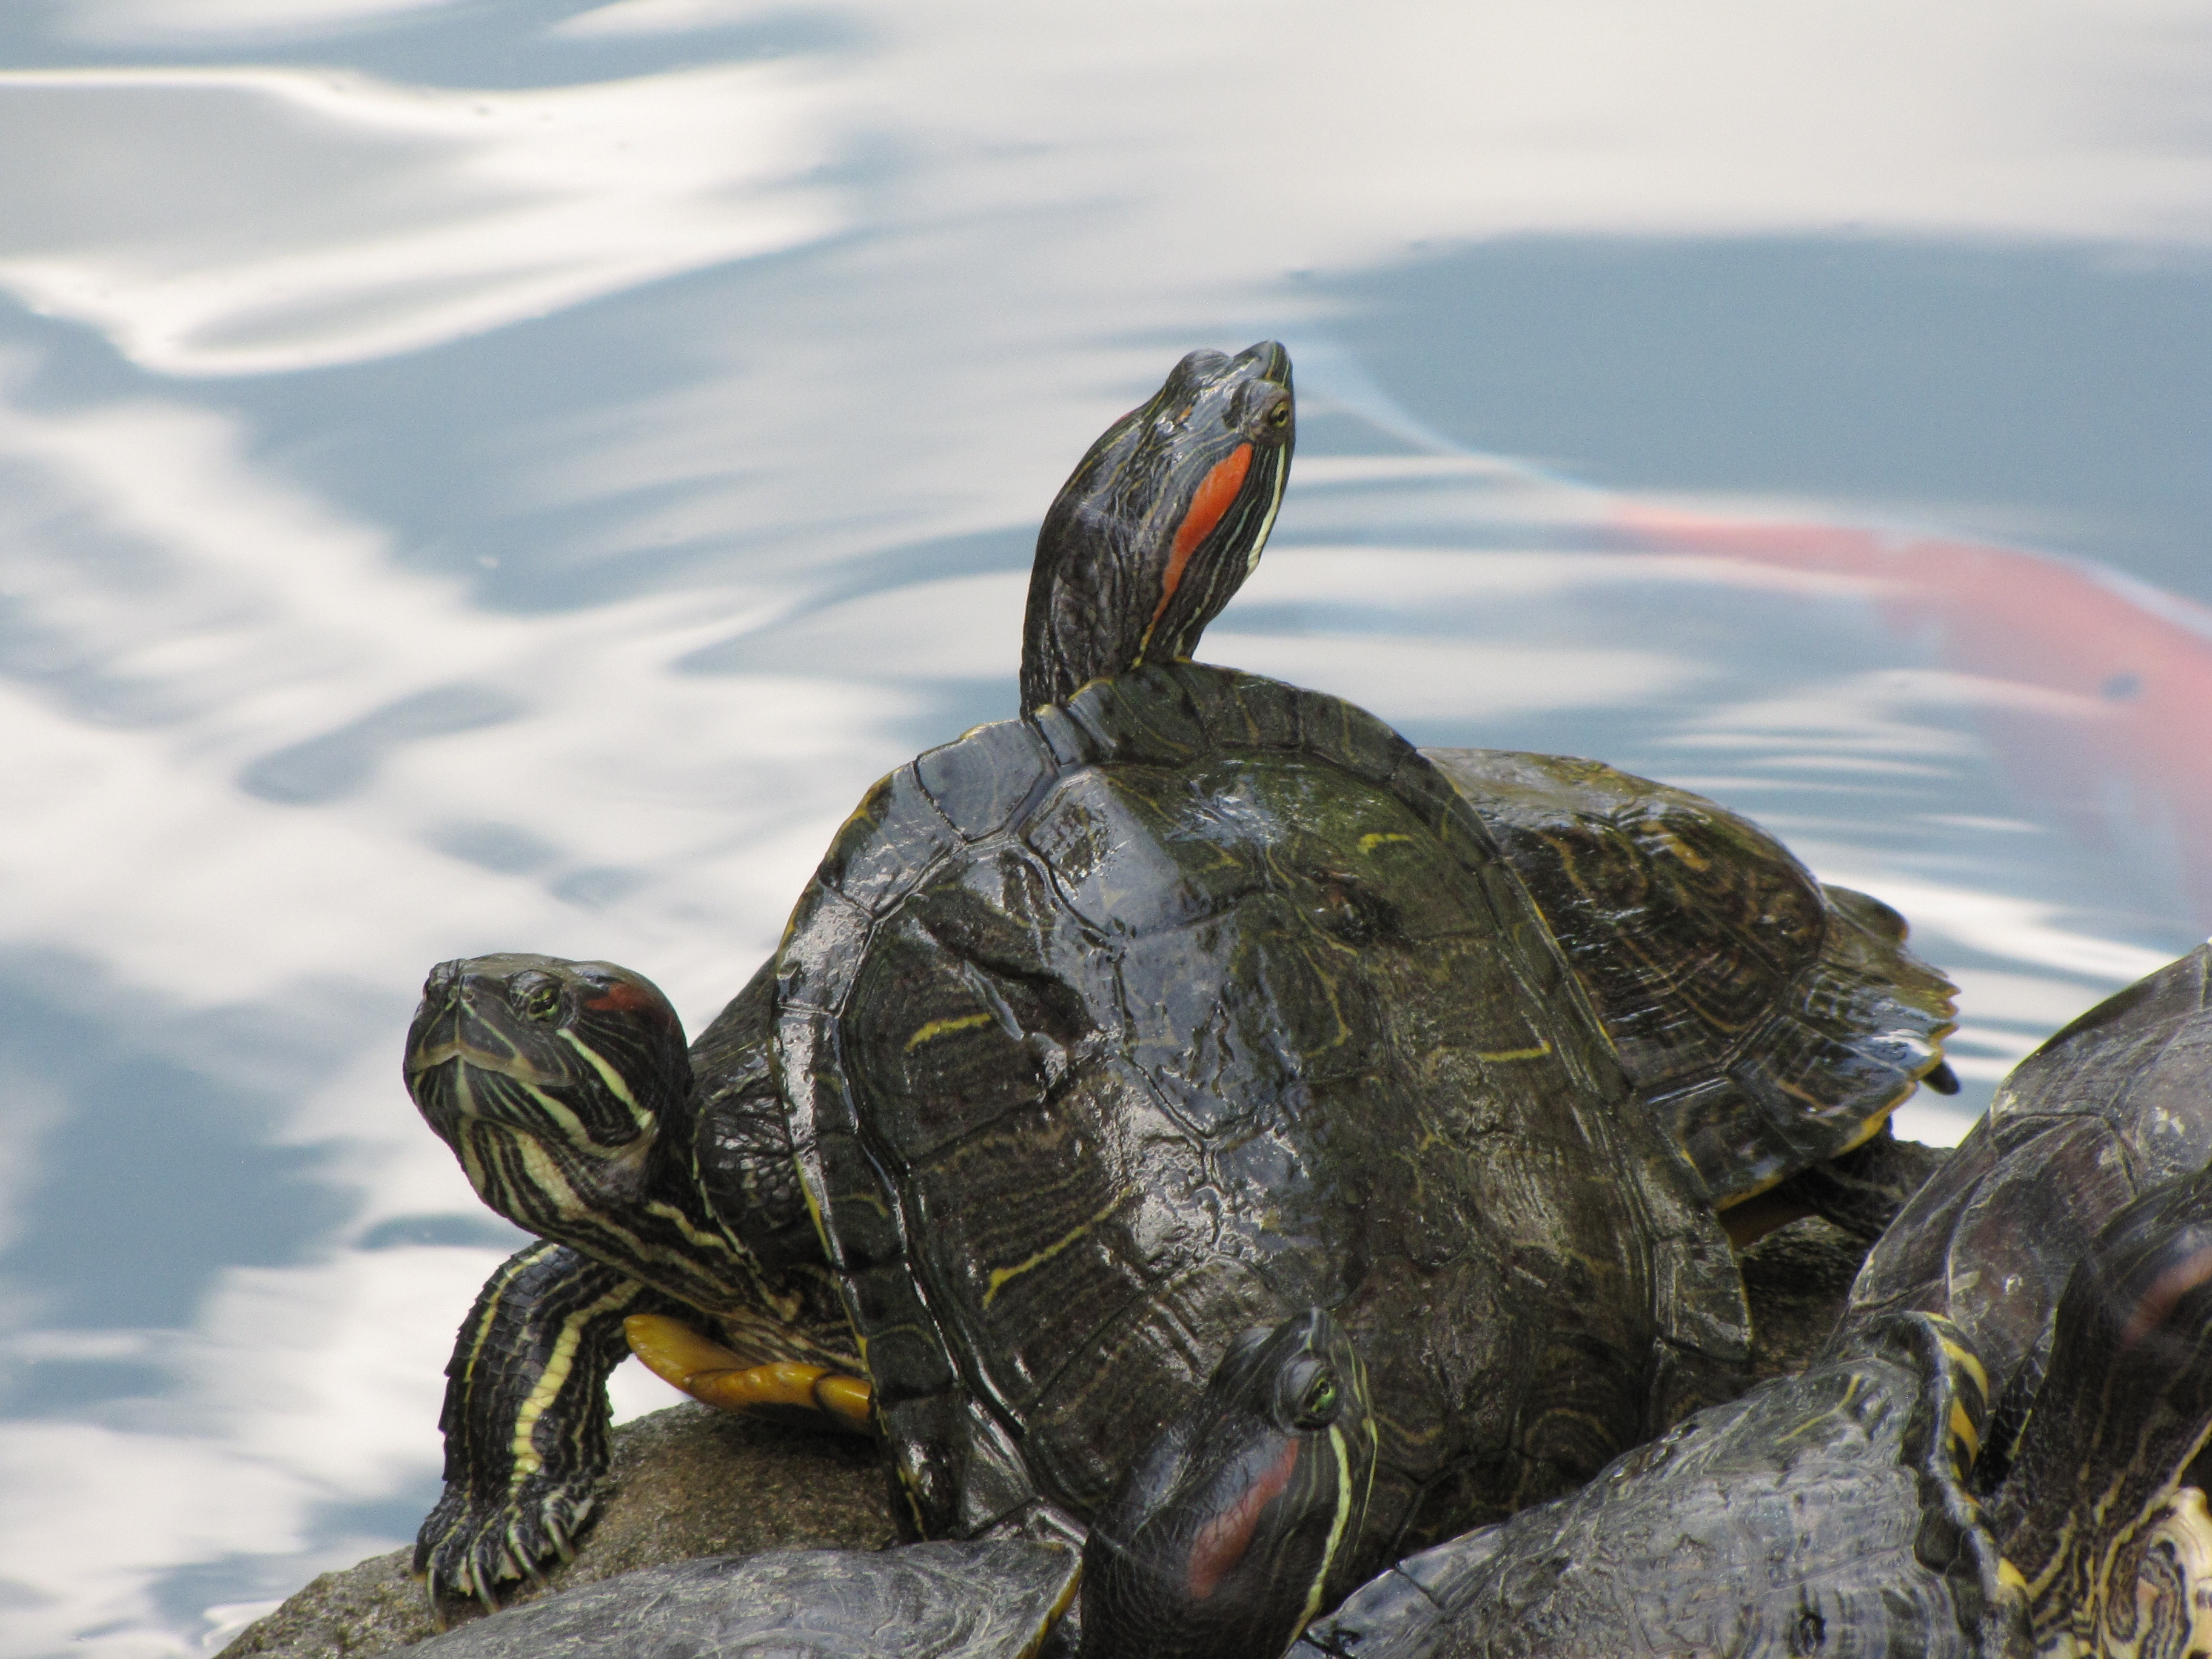 turtle dominance author lucke charlie close up o